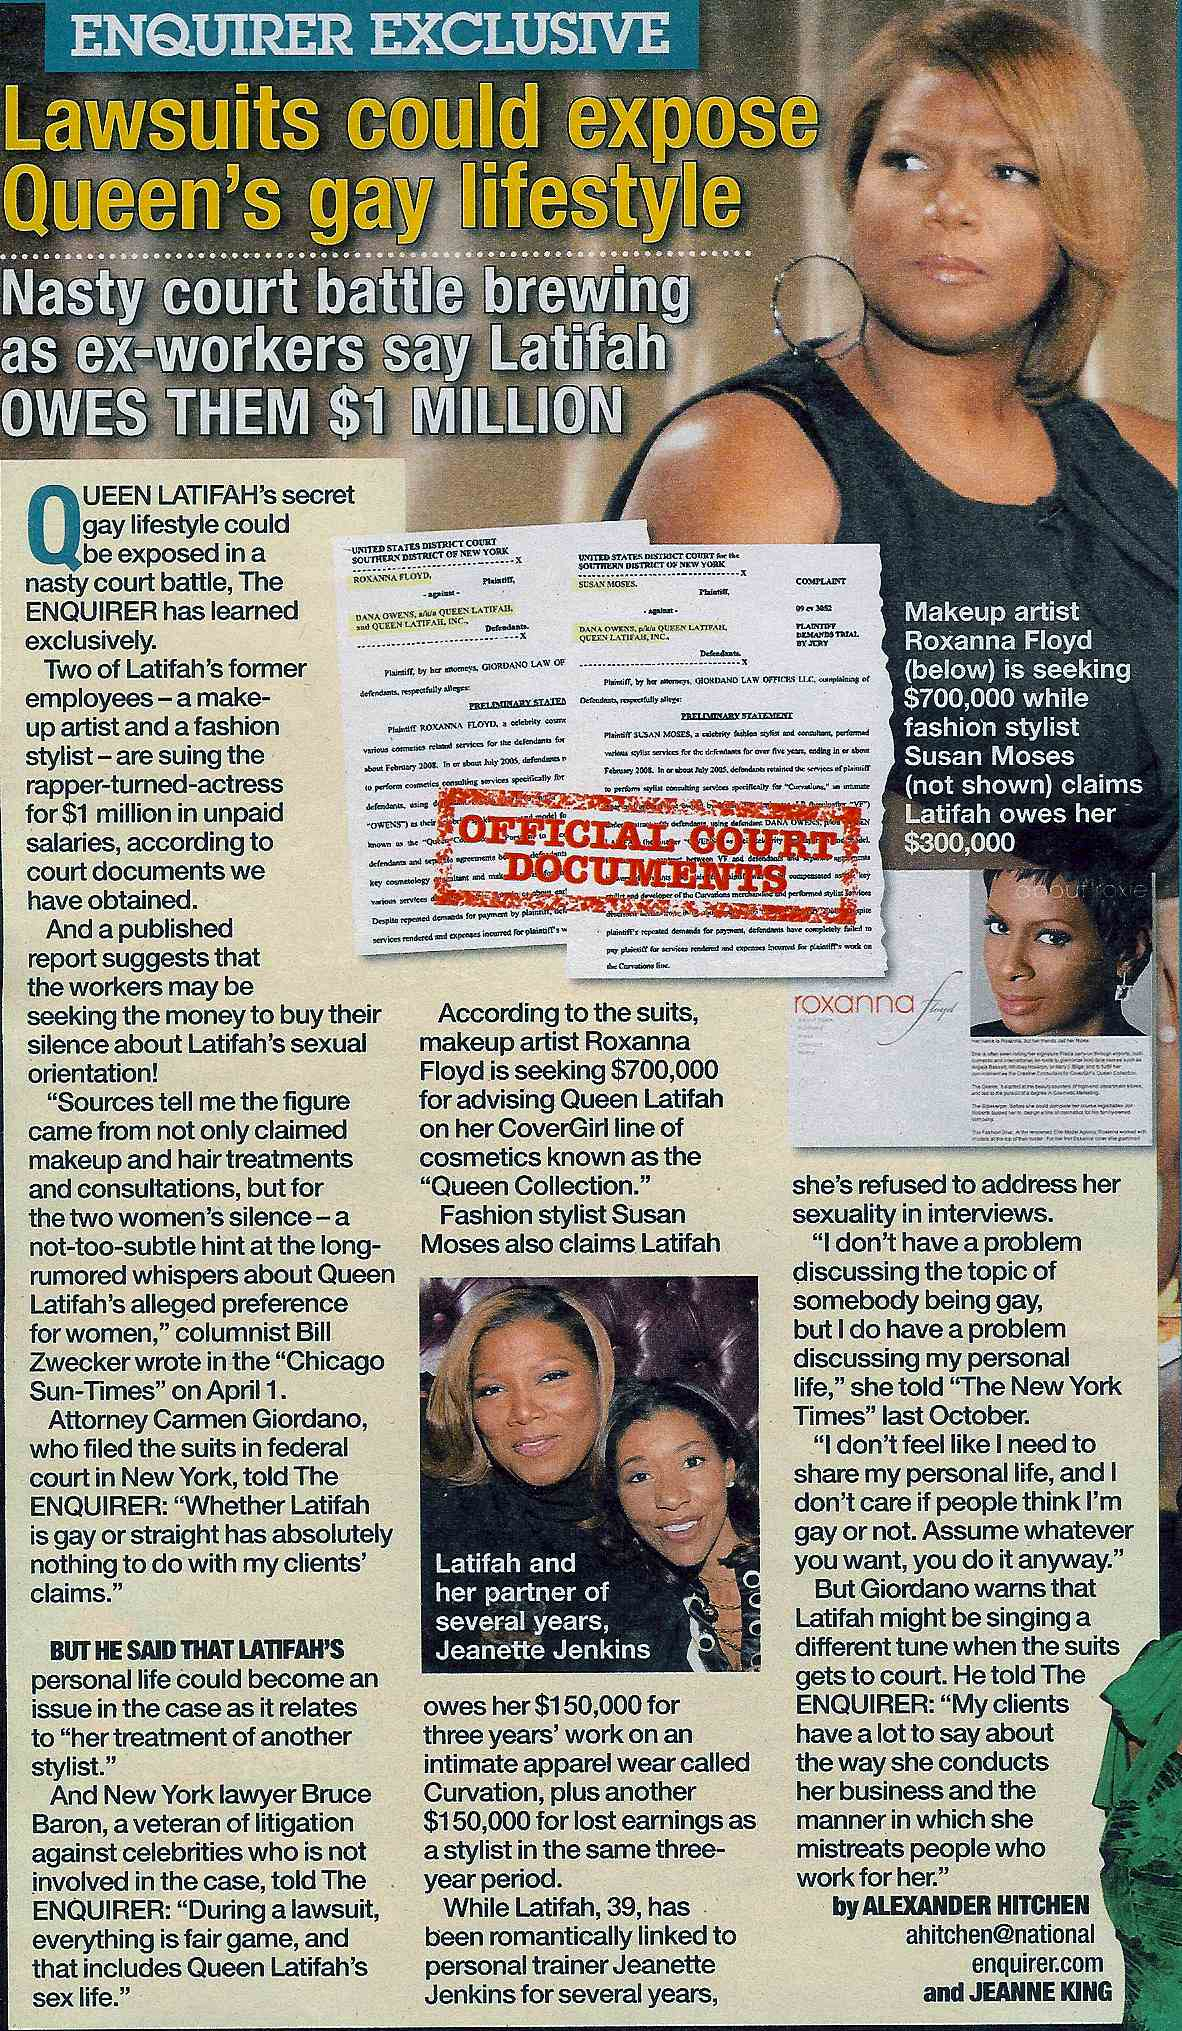 Queen Latifah's Ex-Beauty Workers Want Cash ... For Silence?